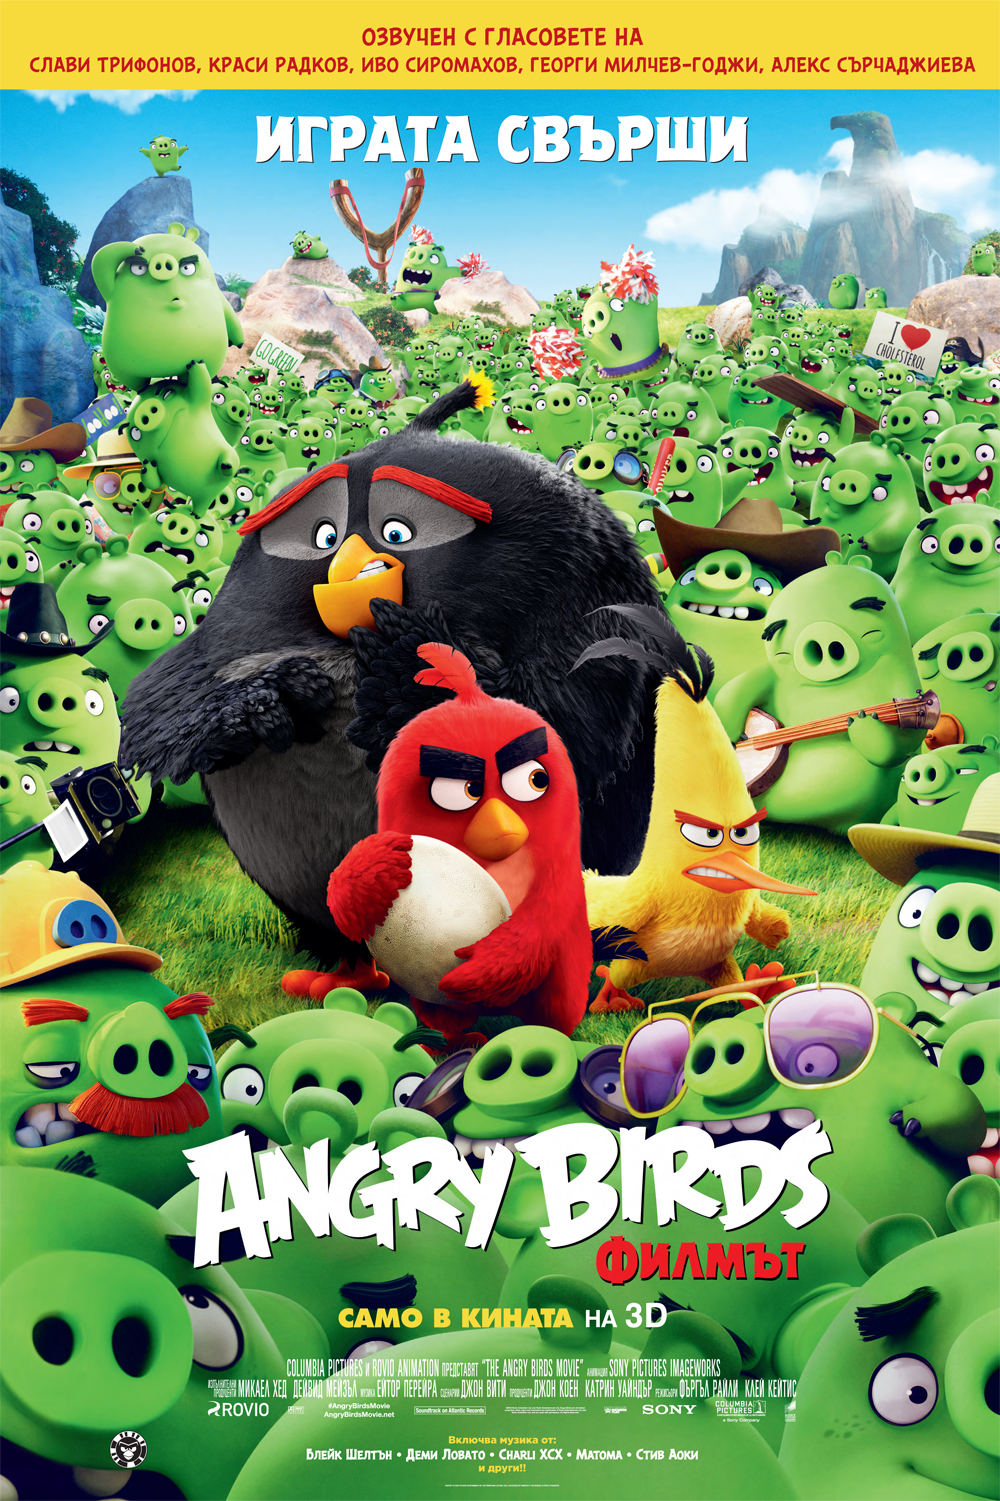 The Angry Birds Movie RealD 3D